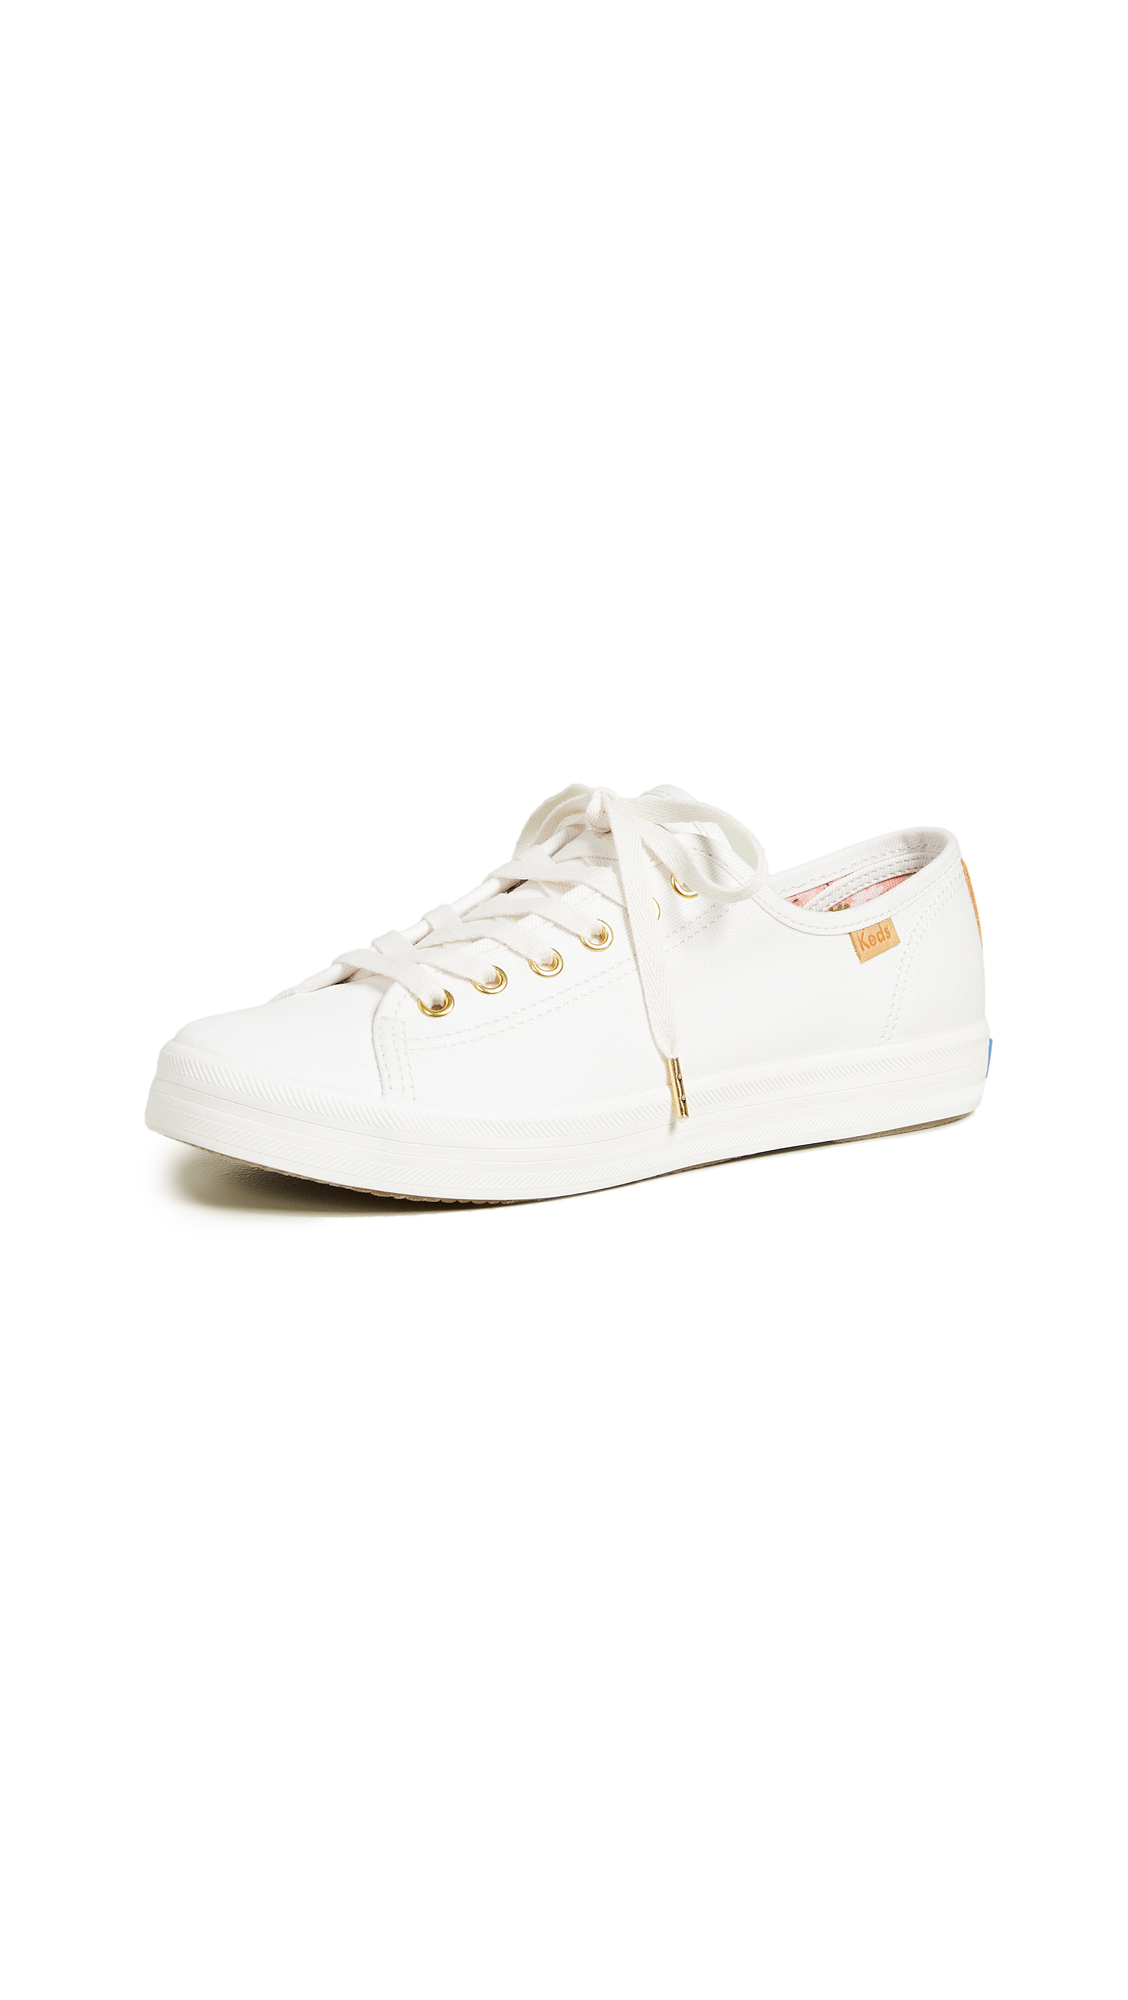 Keds x Rifle Paper CO Sneakers - Creme